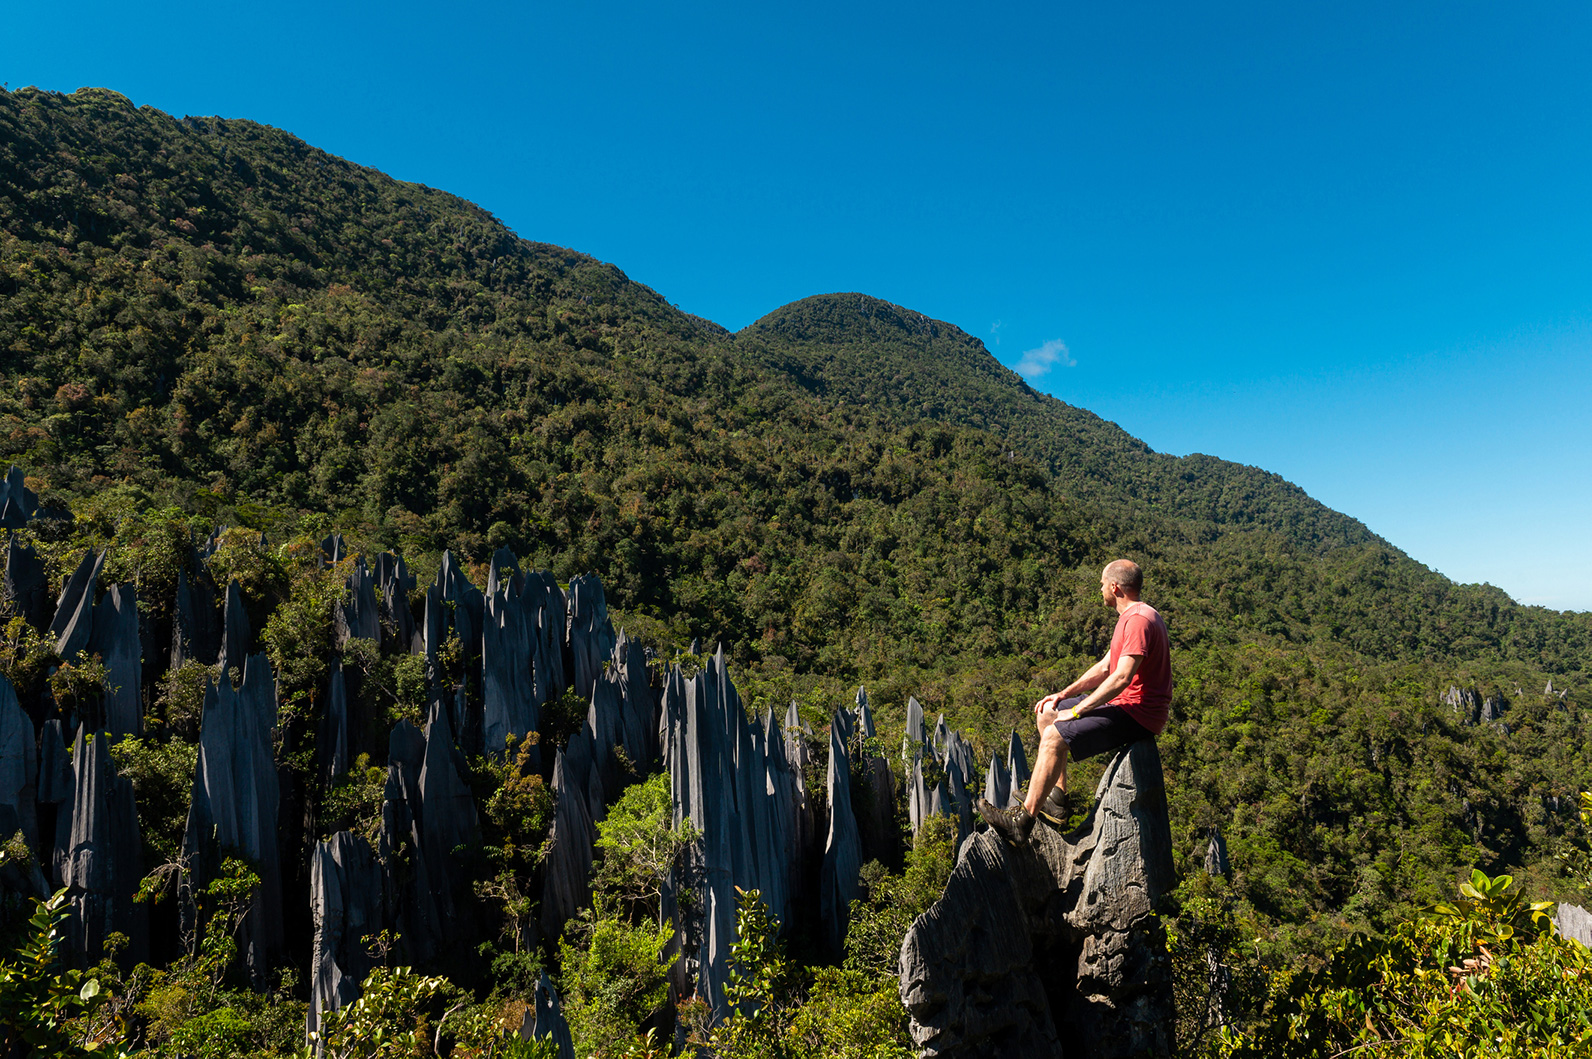 A tourist explores the Gunung Mulu National Park in Sarawak.